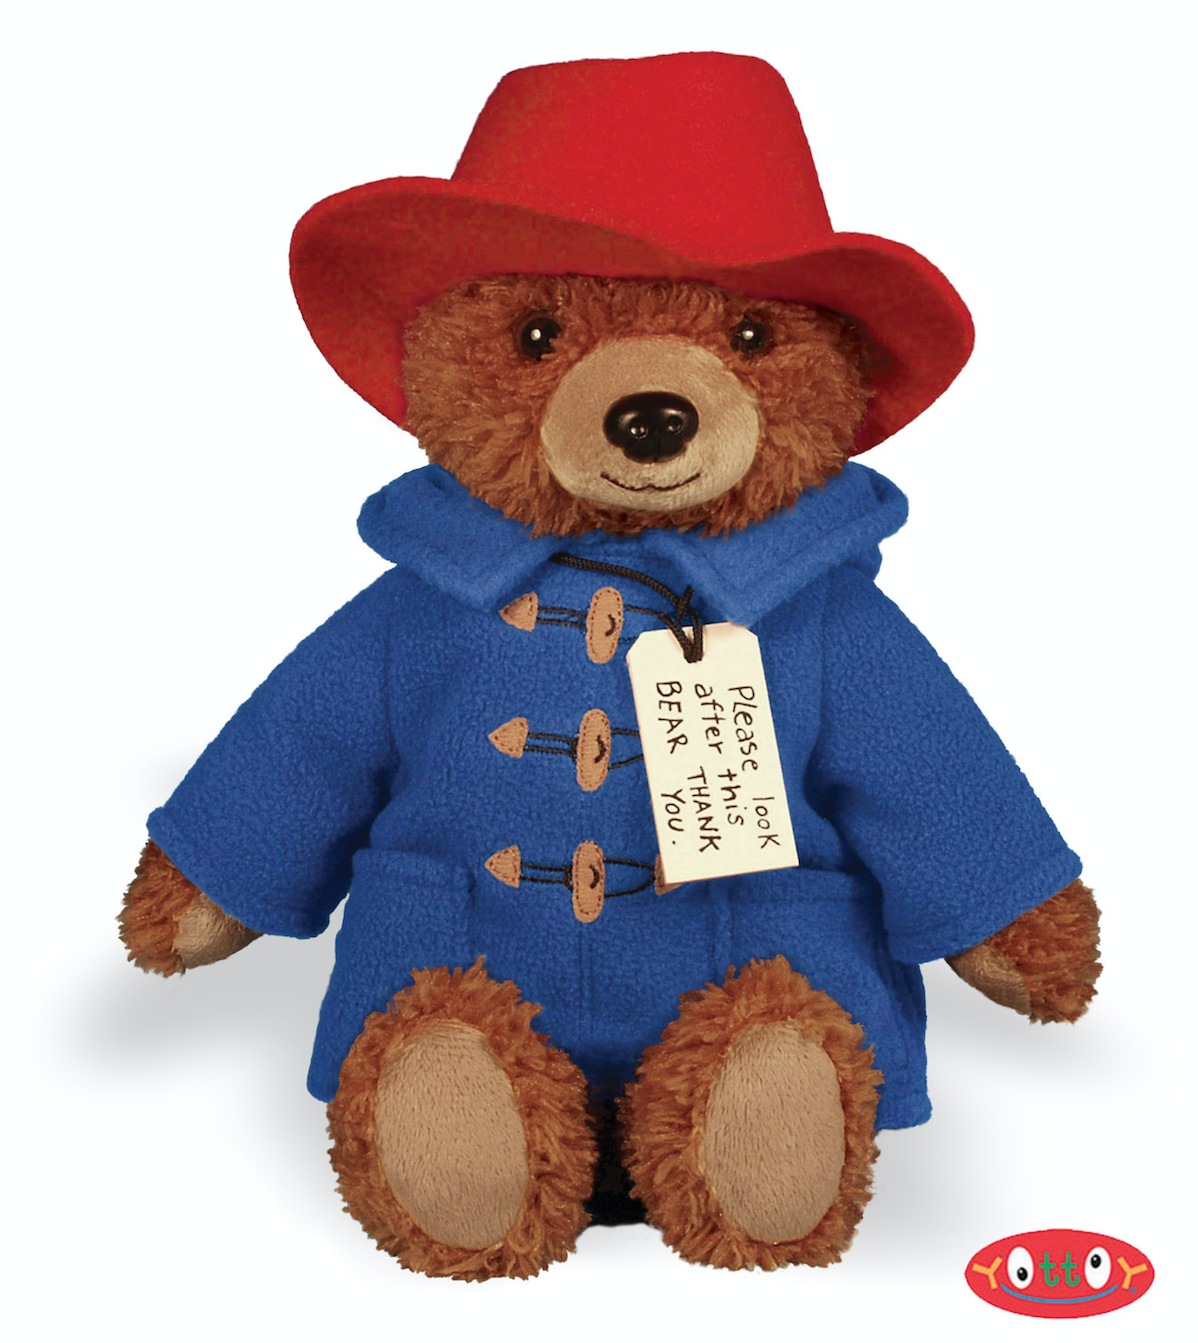 Donate today - It's cold out there. Do you want to spread a little bit of cheer to a homeless child this winter? With a donation of $25 today, an adorable Paddington™ plush bear or book will be given in your honor to a child in a shelter. Your gift will provide critical emergency assistance to give families on the verge of homelessness what they most want: a home.The best part is that thanks to the CT REALTORS®Foundation for generously providing the bears, and to Citizens Bank for their valuable support of our campaign, every dollar raised will allow CCEH to provide emergency assistance to help children in Connecticut stay at home through the be homeful project. It's a win-win!